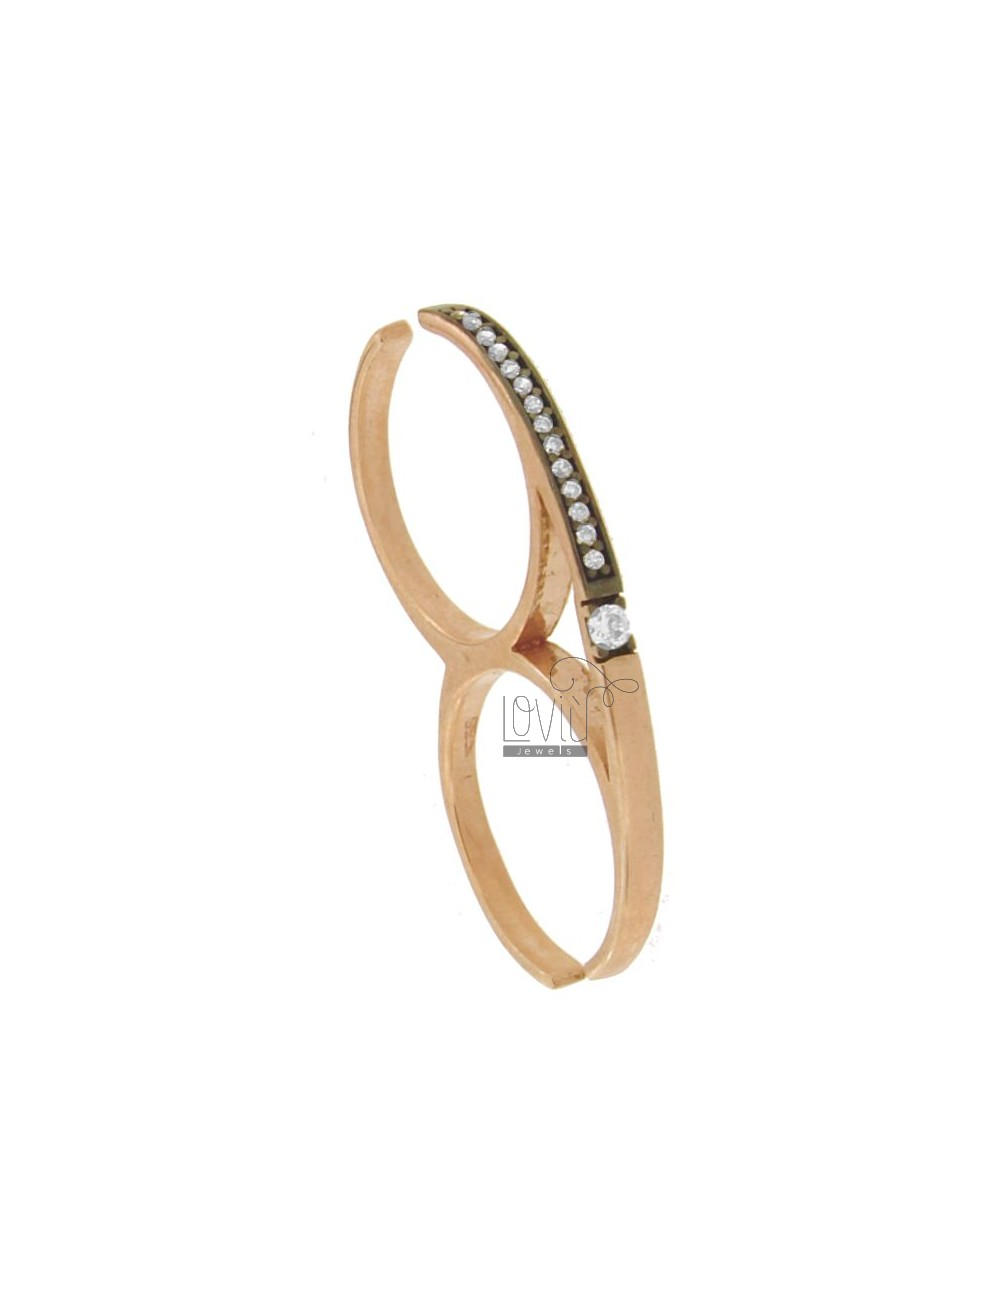 RING TWO FINGERS IN ROSE GOLD PLATED AG 925 TIT AND ZIRCONIA SIZE ADJUSTABLE